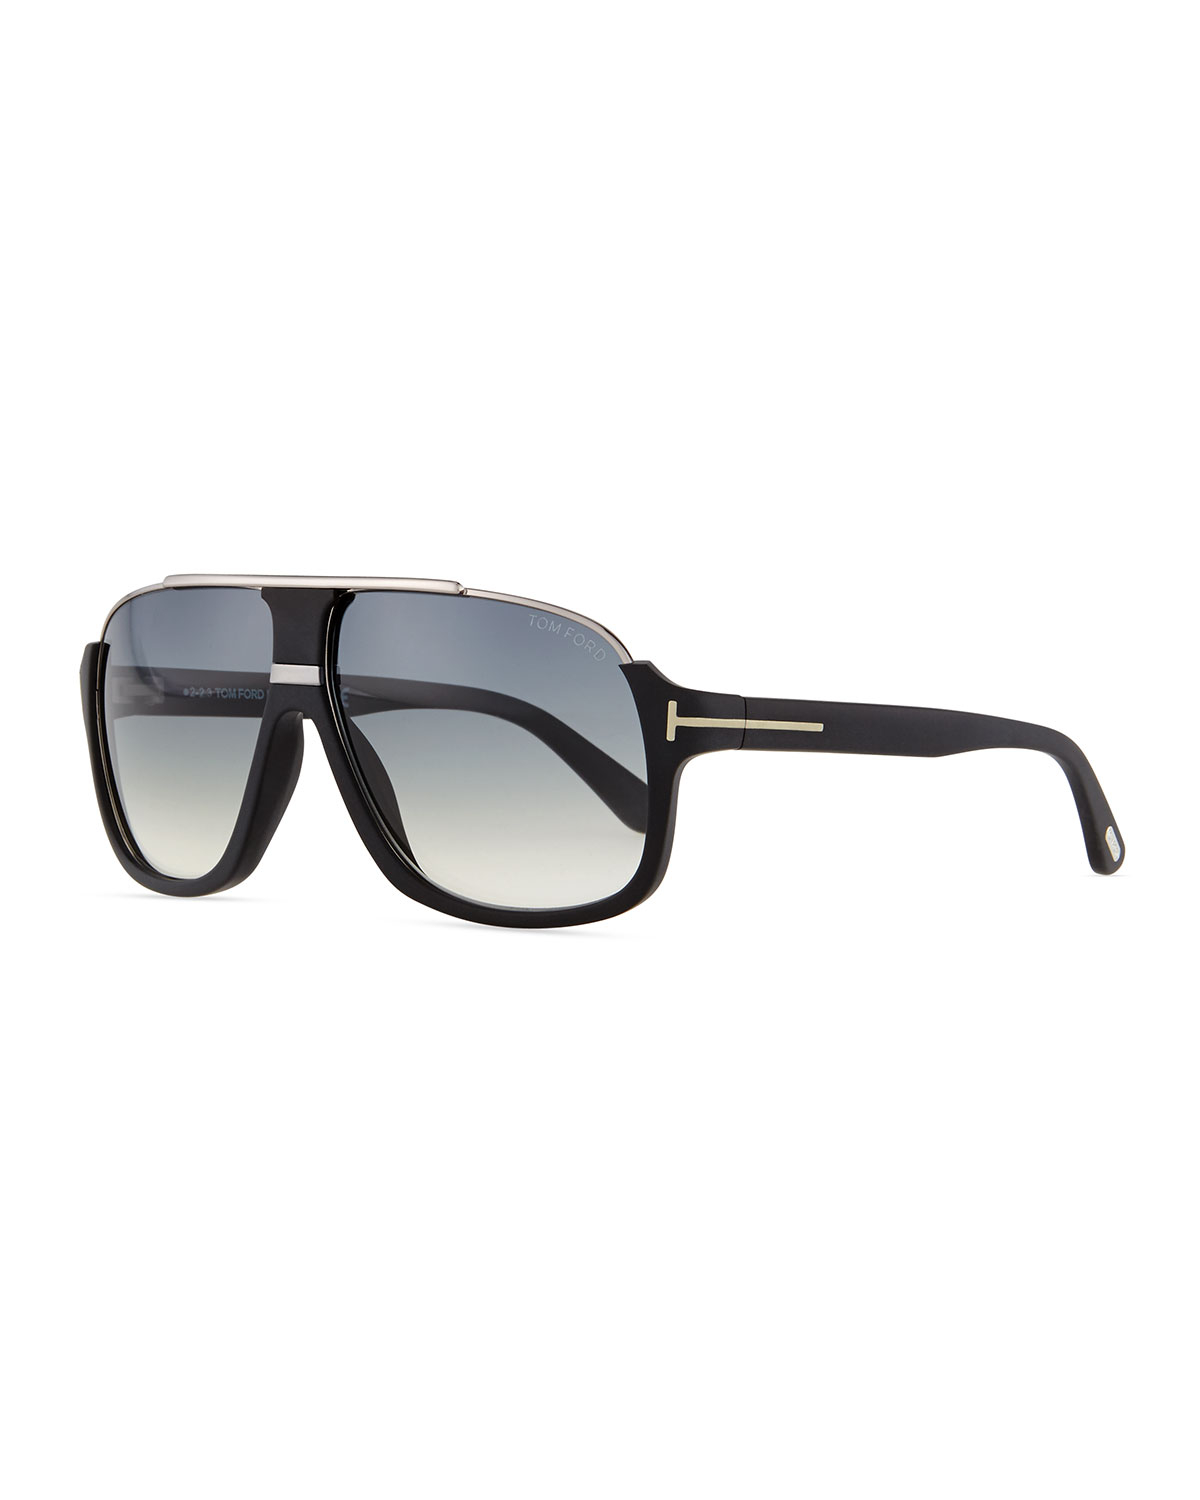 tom ford elliot acetate sunglasses in black for men lyst. Black Bedroom Furniture Sets. Home Design Ideas